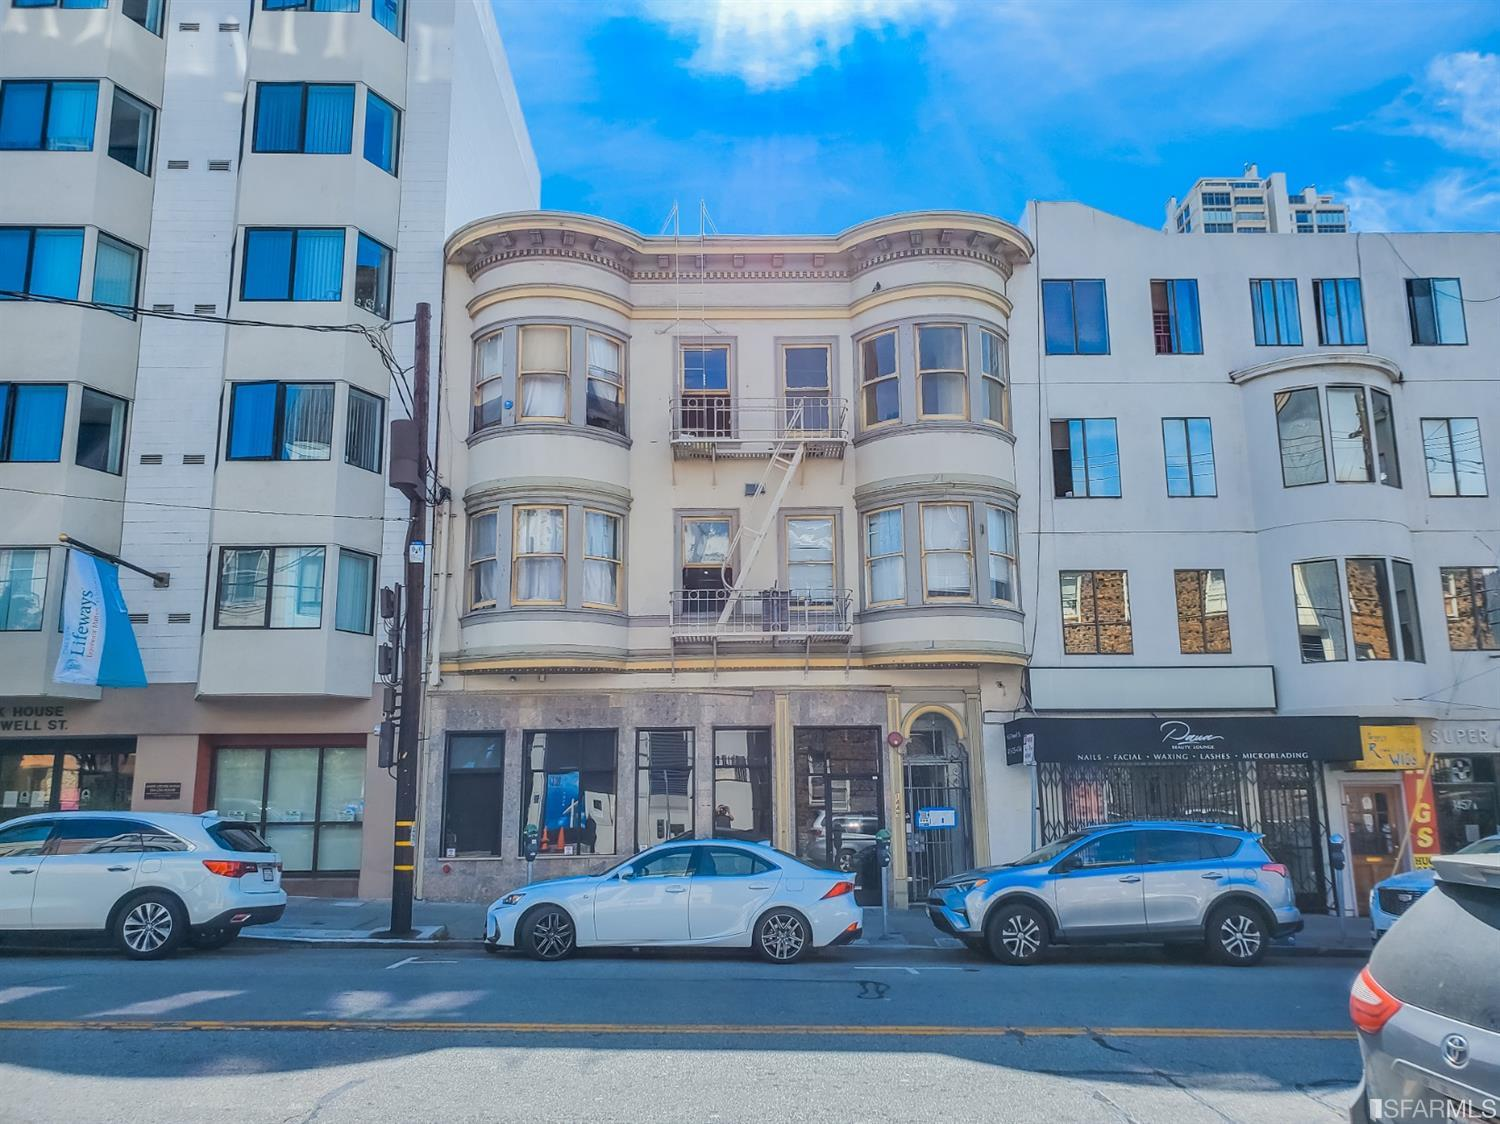 1443-1449 Powell St & 805 Vallejo St is a mixed-use residential hotel located in the North Beach district of San Francisco. The property is on a 4,901 SF parcel and consists of 2 commercial, 8 apartment, and 19 single room occupancy (SRO) residential units. Recent capital improvements to the building include the updating of the common areas and ten units. Additionally, there are four bonus unwarranted units that are accessible off 803 Vallejo. Residents of the property enjoy a stellar location and are walking distance to Washington Square Park, Columbus Avenue, Chinatown, and the Financial district.